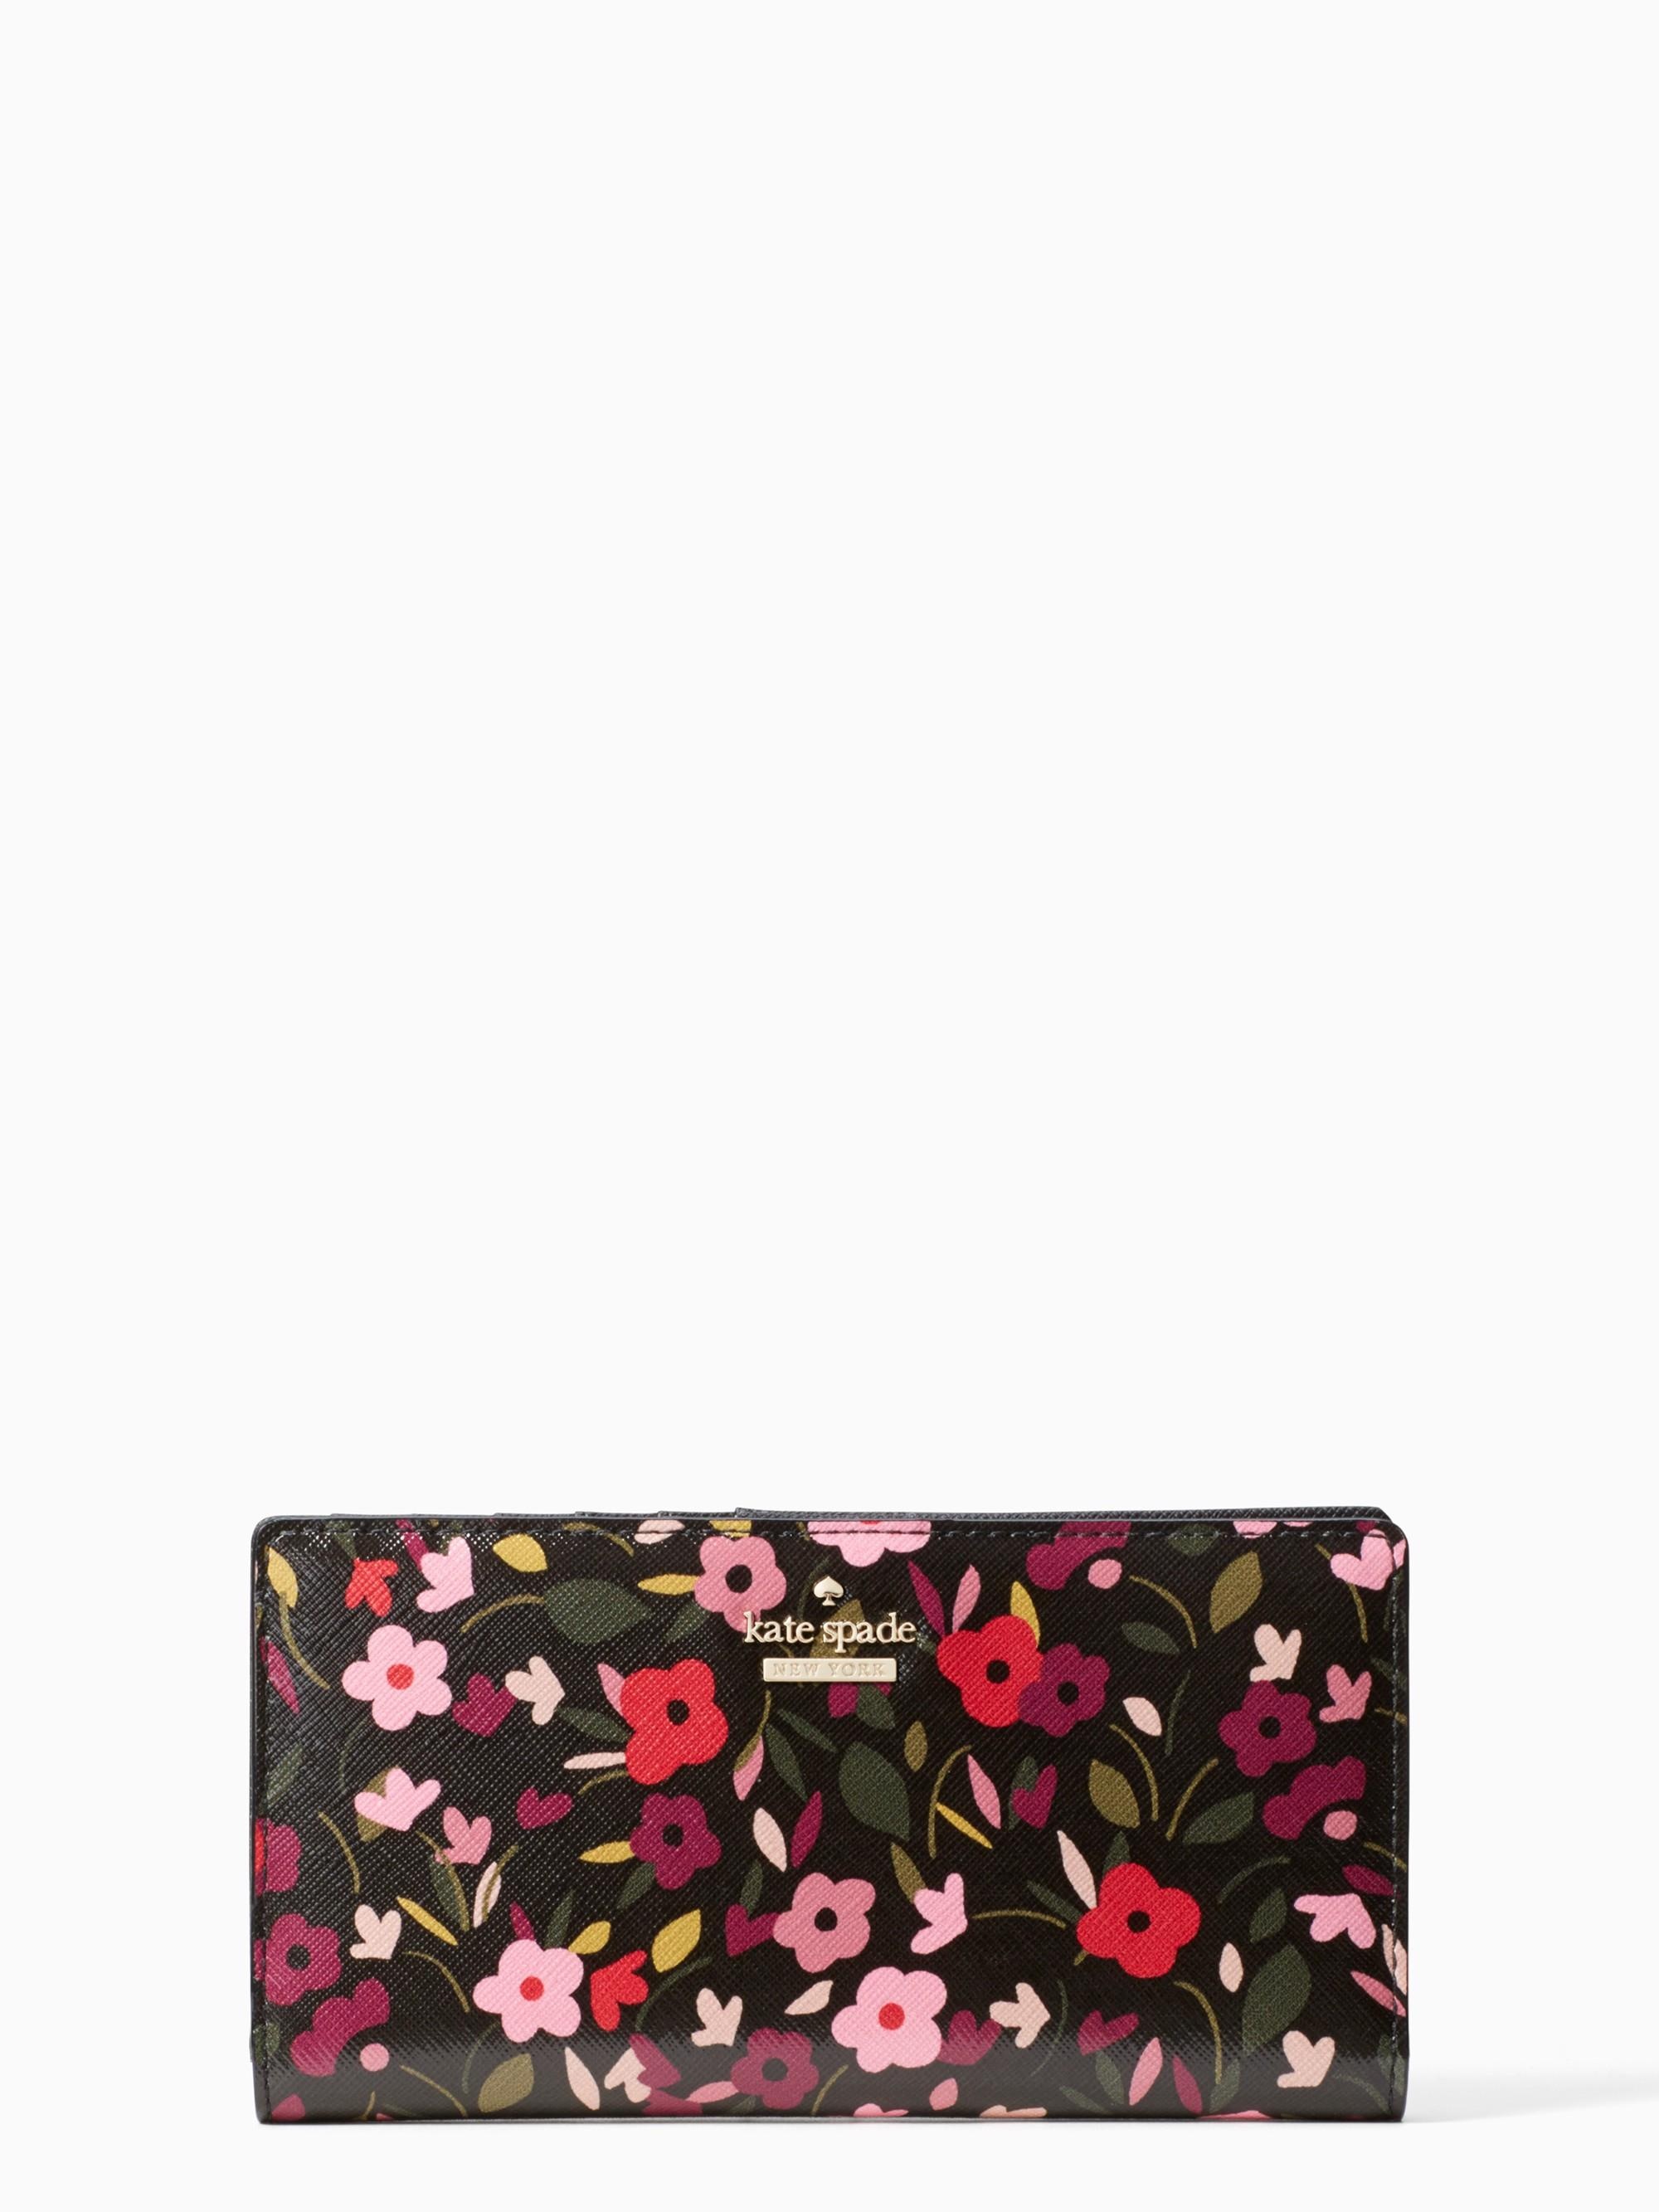 Kate Spade Cameron Street Boho Floral Stacy In Black